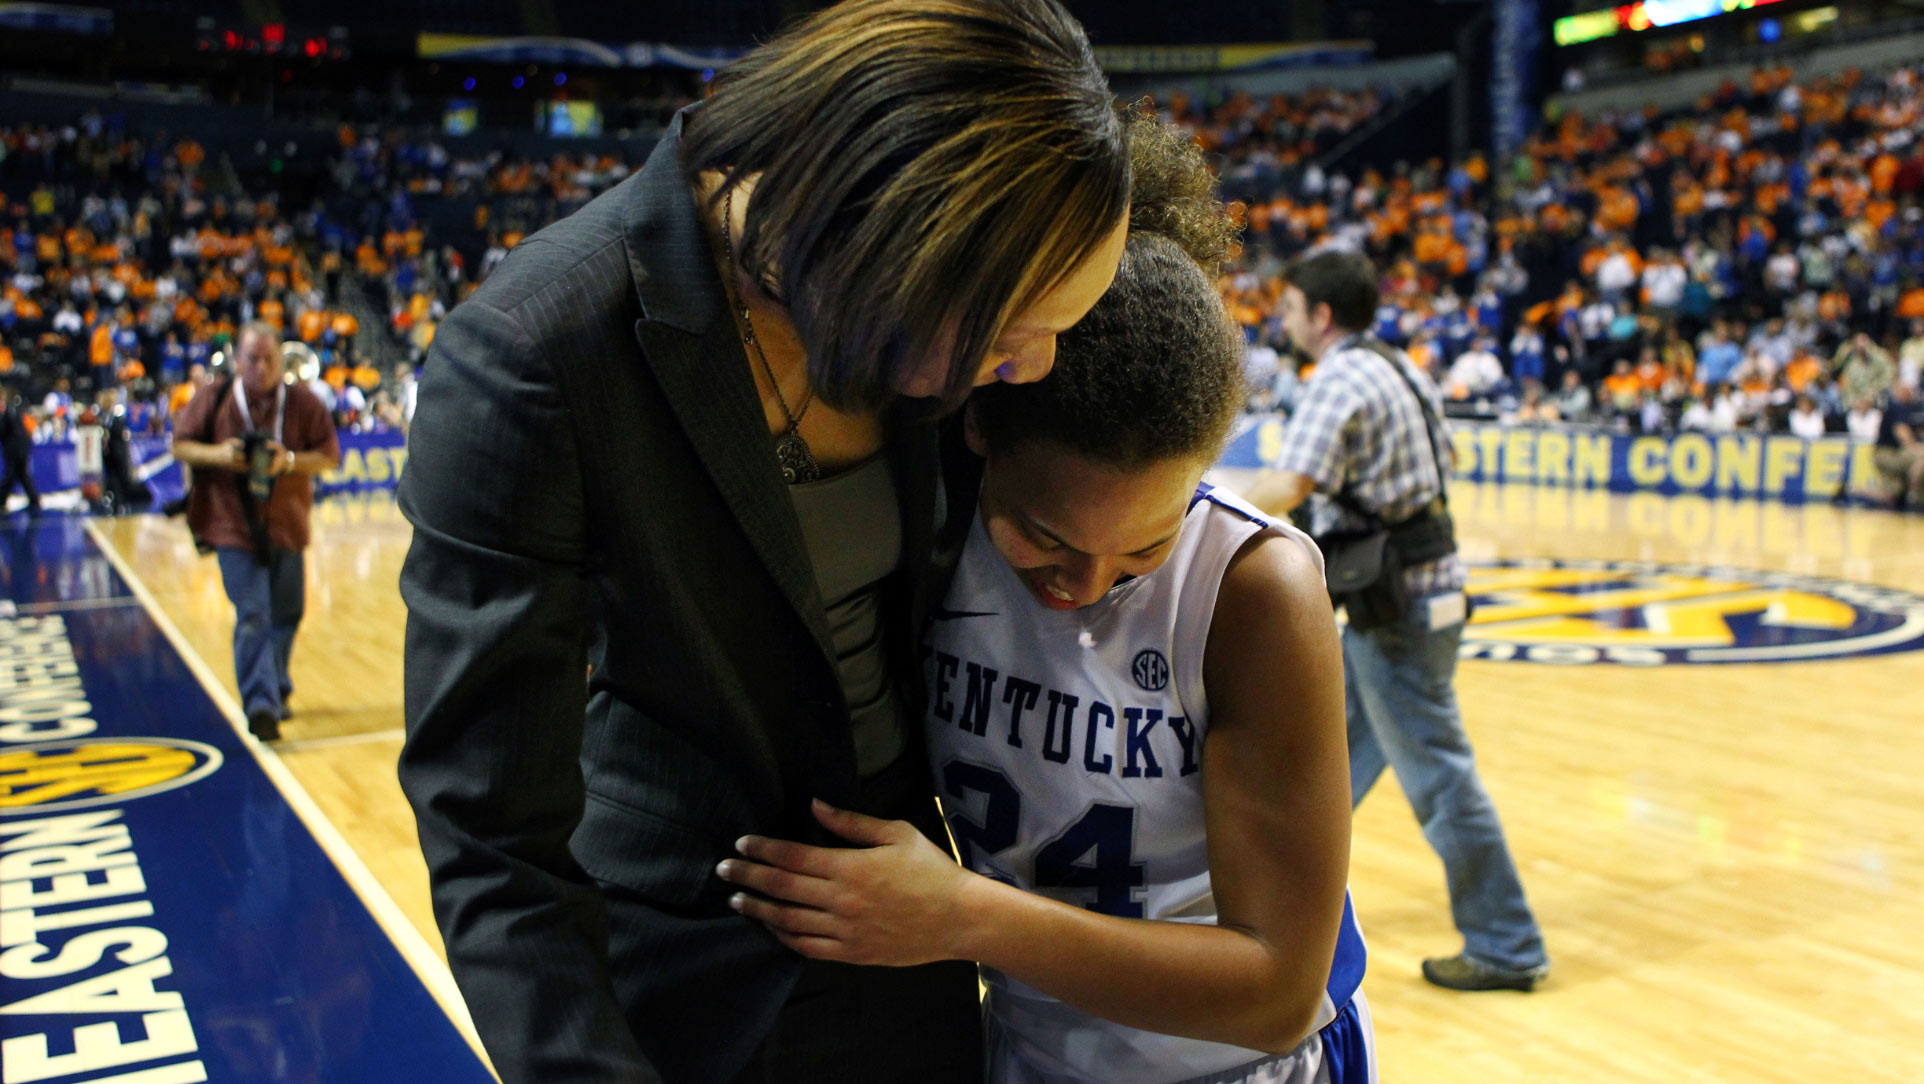 A close-up photo of Amber, dressed in her game uniform, side hugging one of her coaches as they appear to talk on the sidelines of the court.